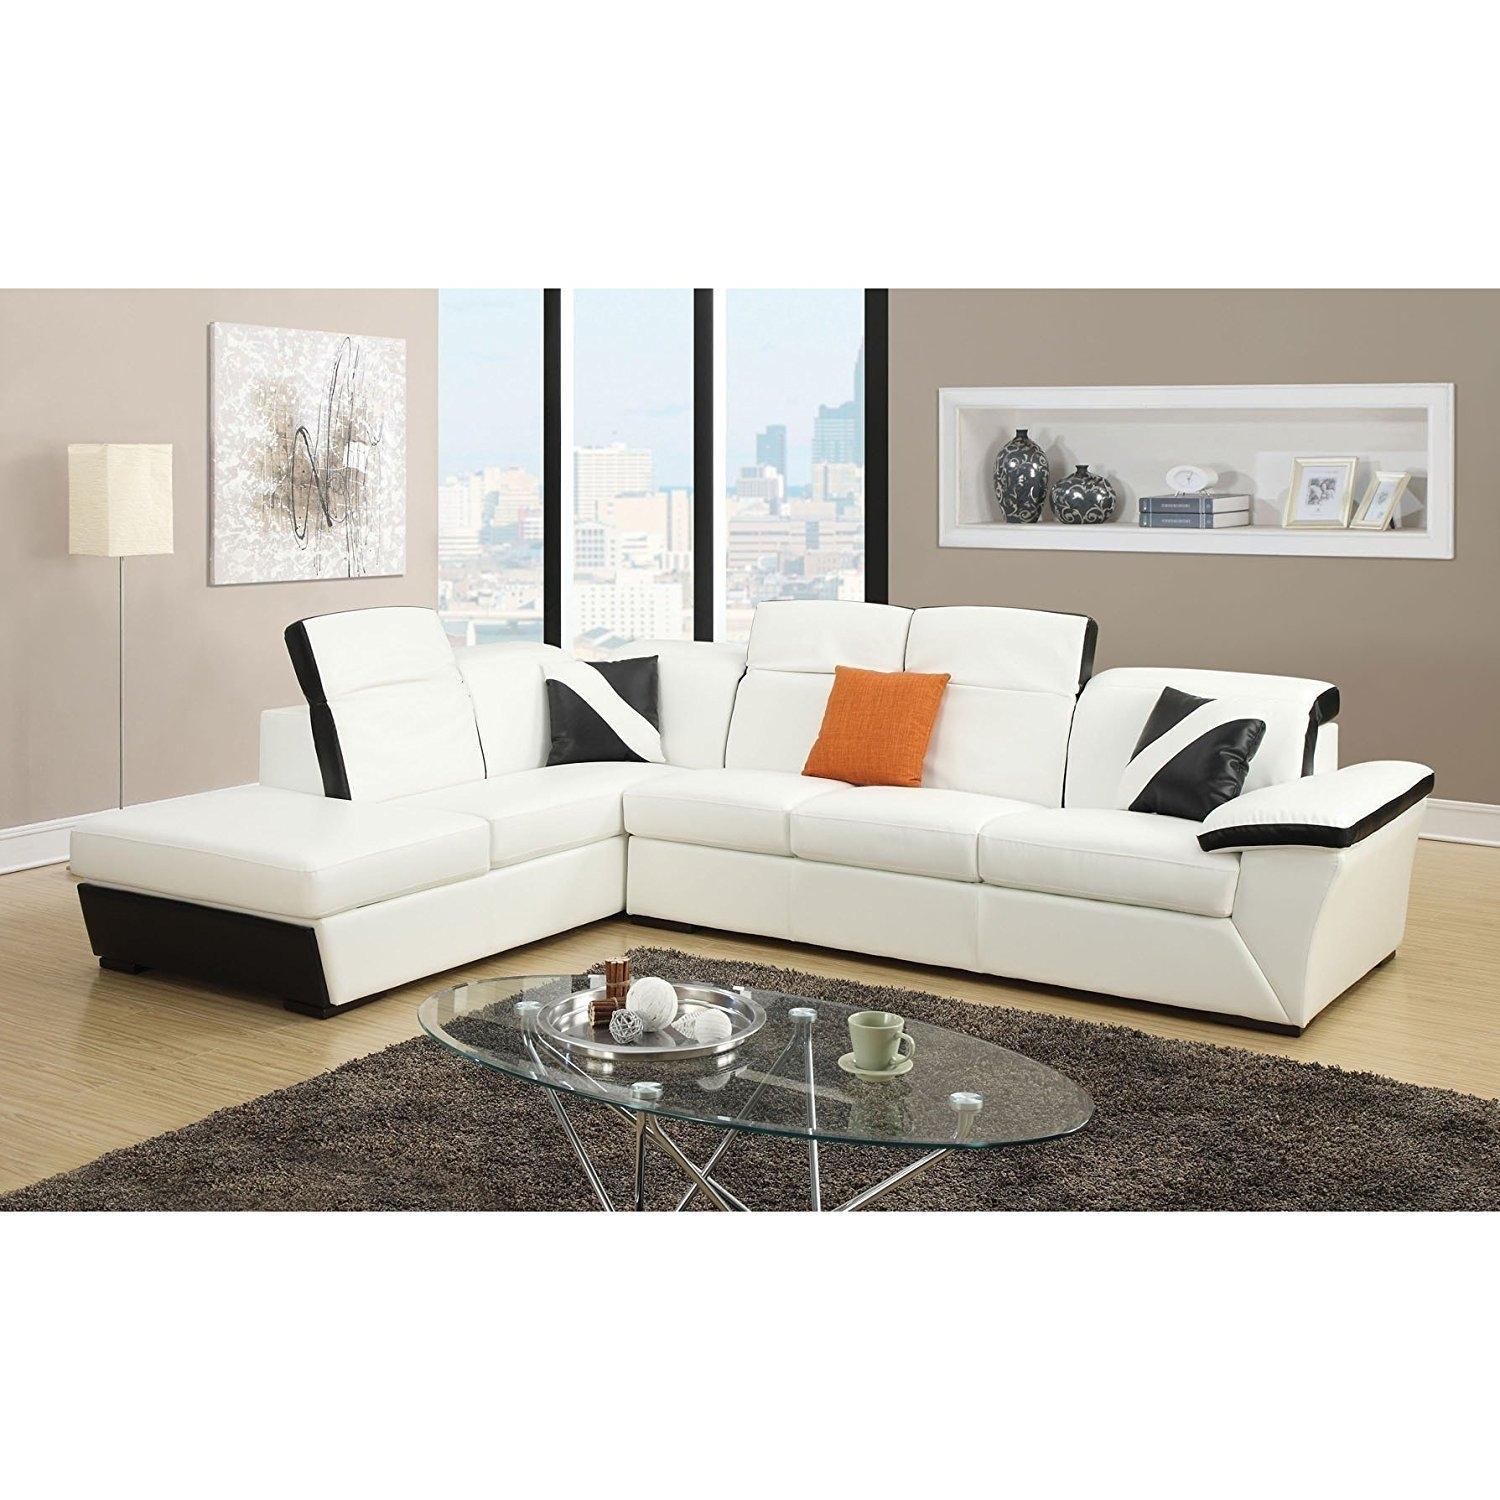 Orren Ellis Keyana Sofa Sectional | Wayfair pertaining to Collins Sofa Sectionals With Reversible Chaise (Image 22 of 30)